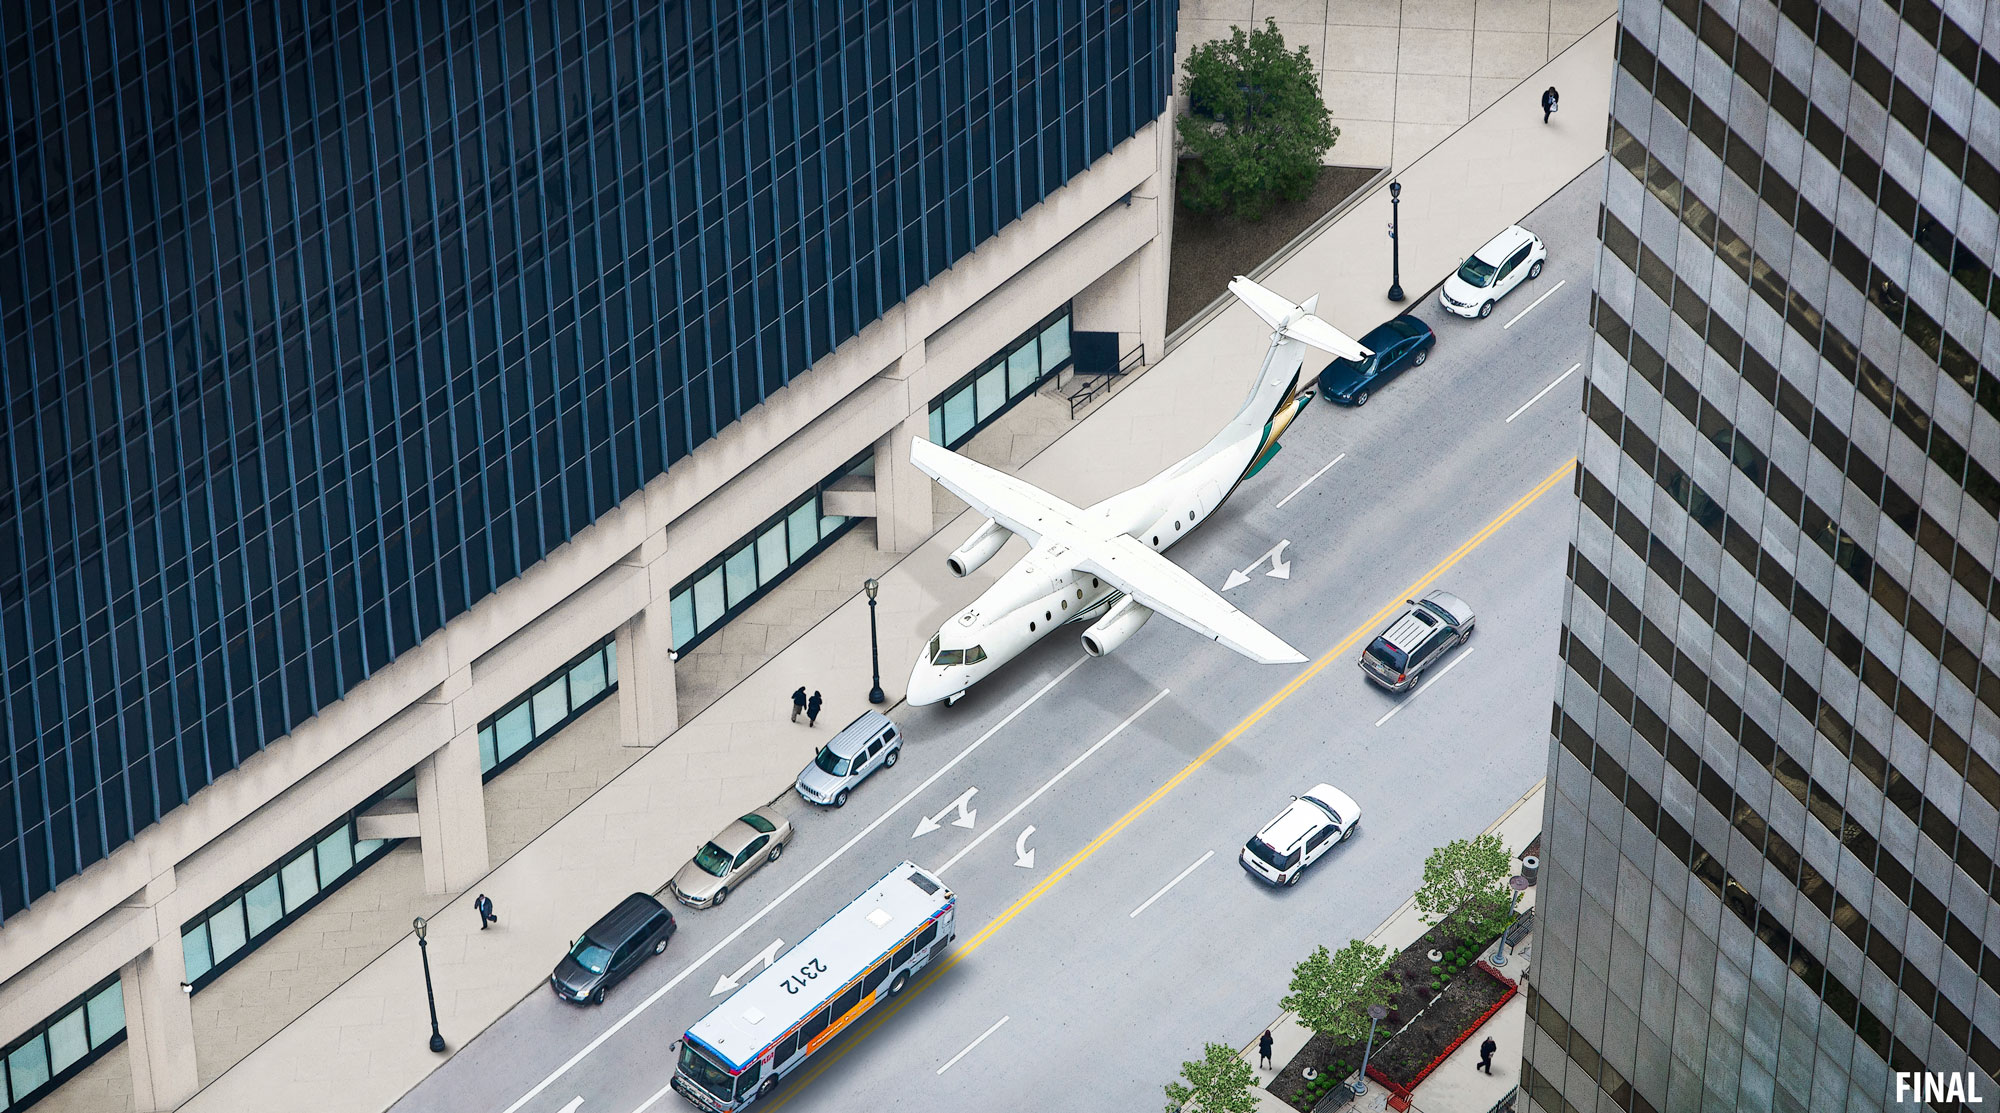 professional composite image of airplane parked on street as car